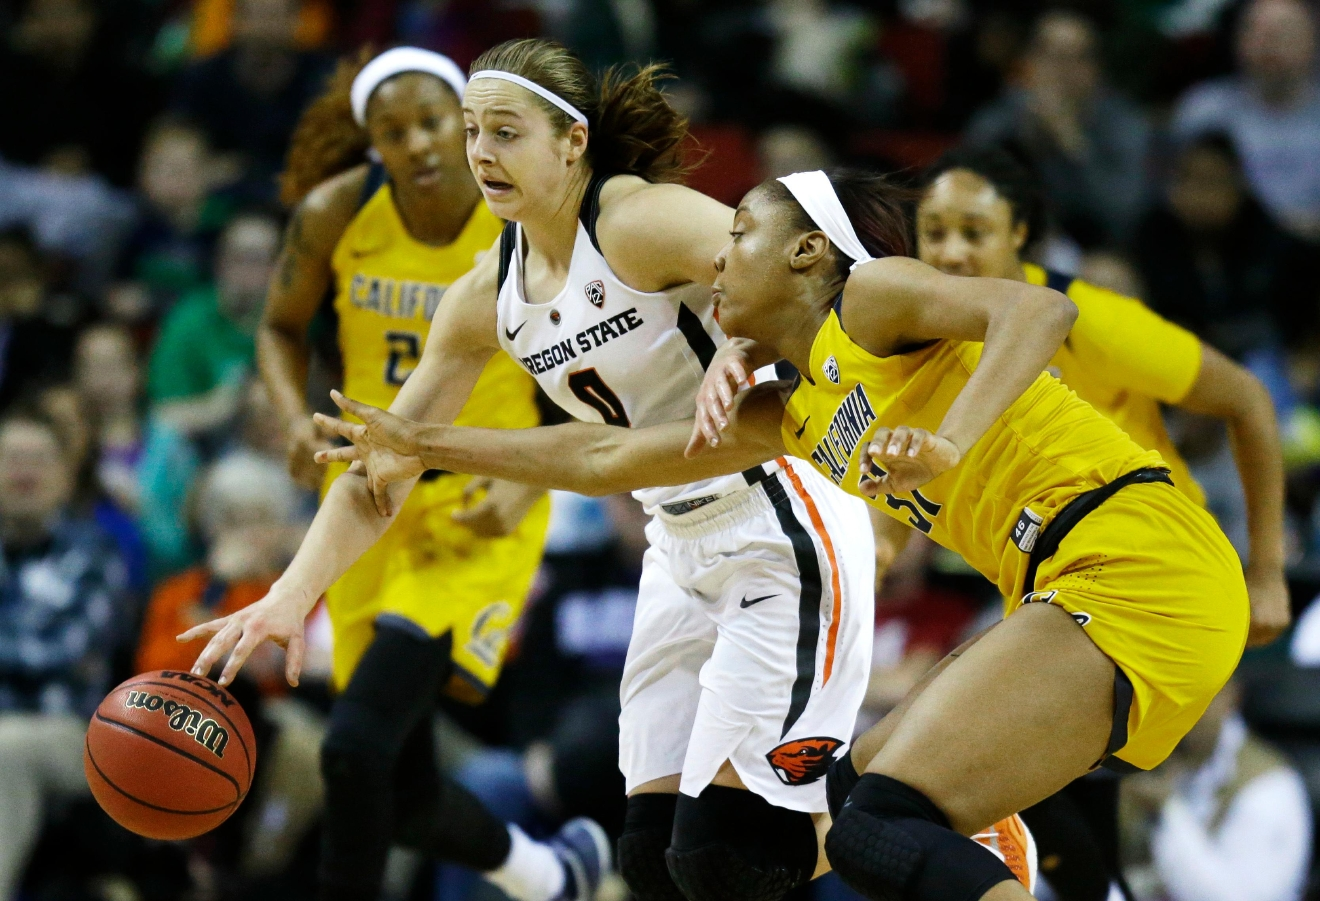 Oregon State guard Mikayla Pivec, center, tries to fend off California forward Kristine Anigwe, right, in the first half of an NCAA college basketball game in the Pac-12 Conference tournament, Friday, March 3, 2017, in Seattle. (AP Photo/Ted S. Warren)